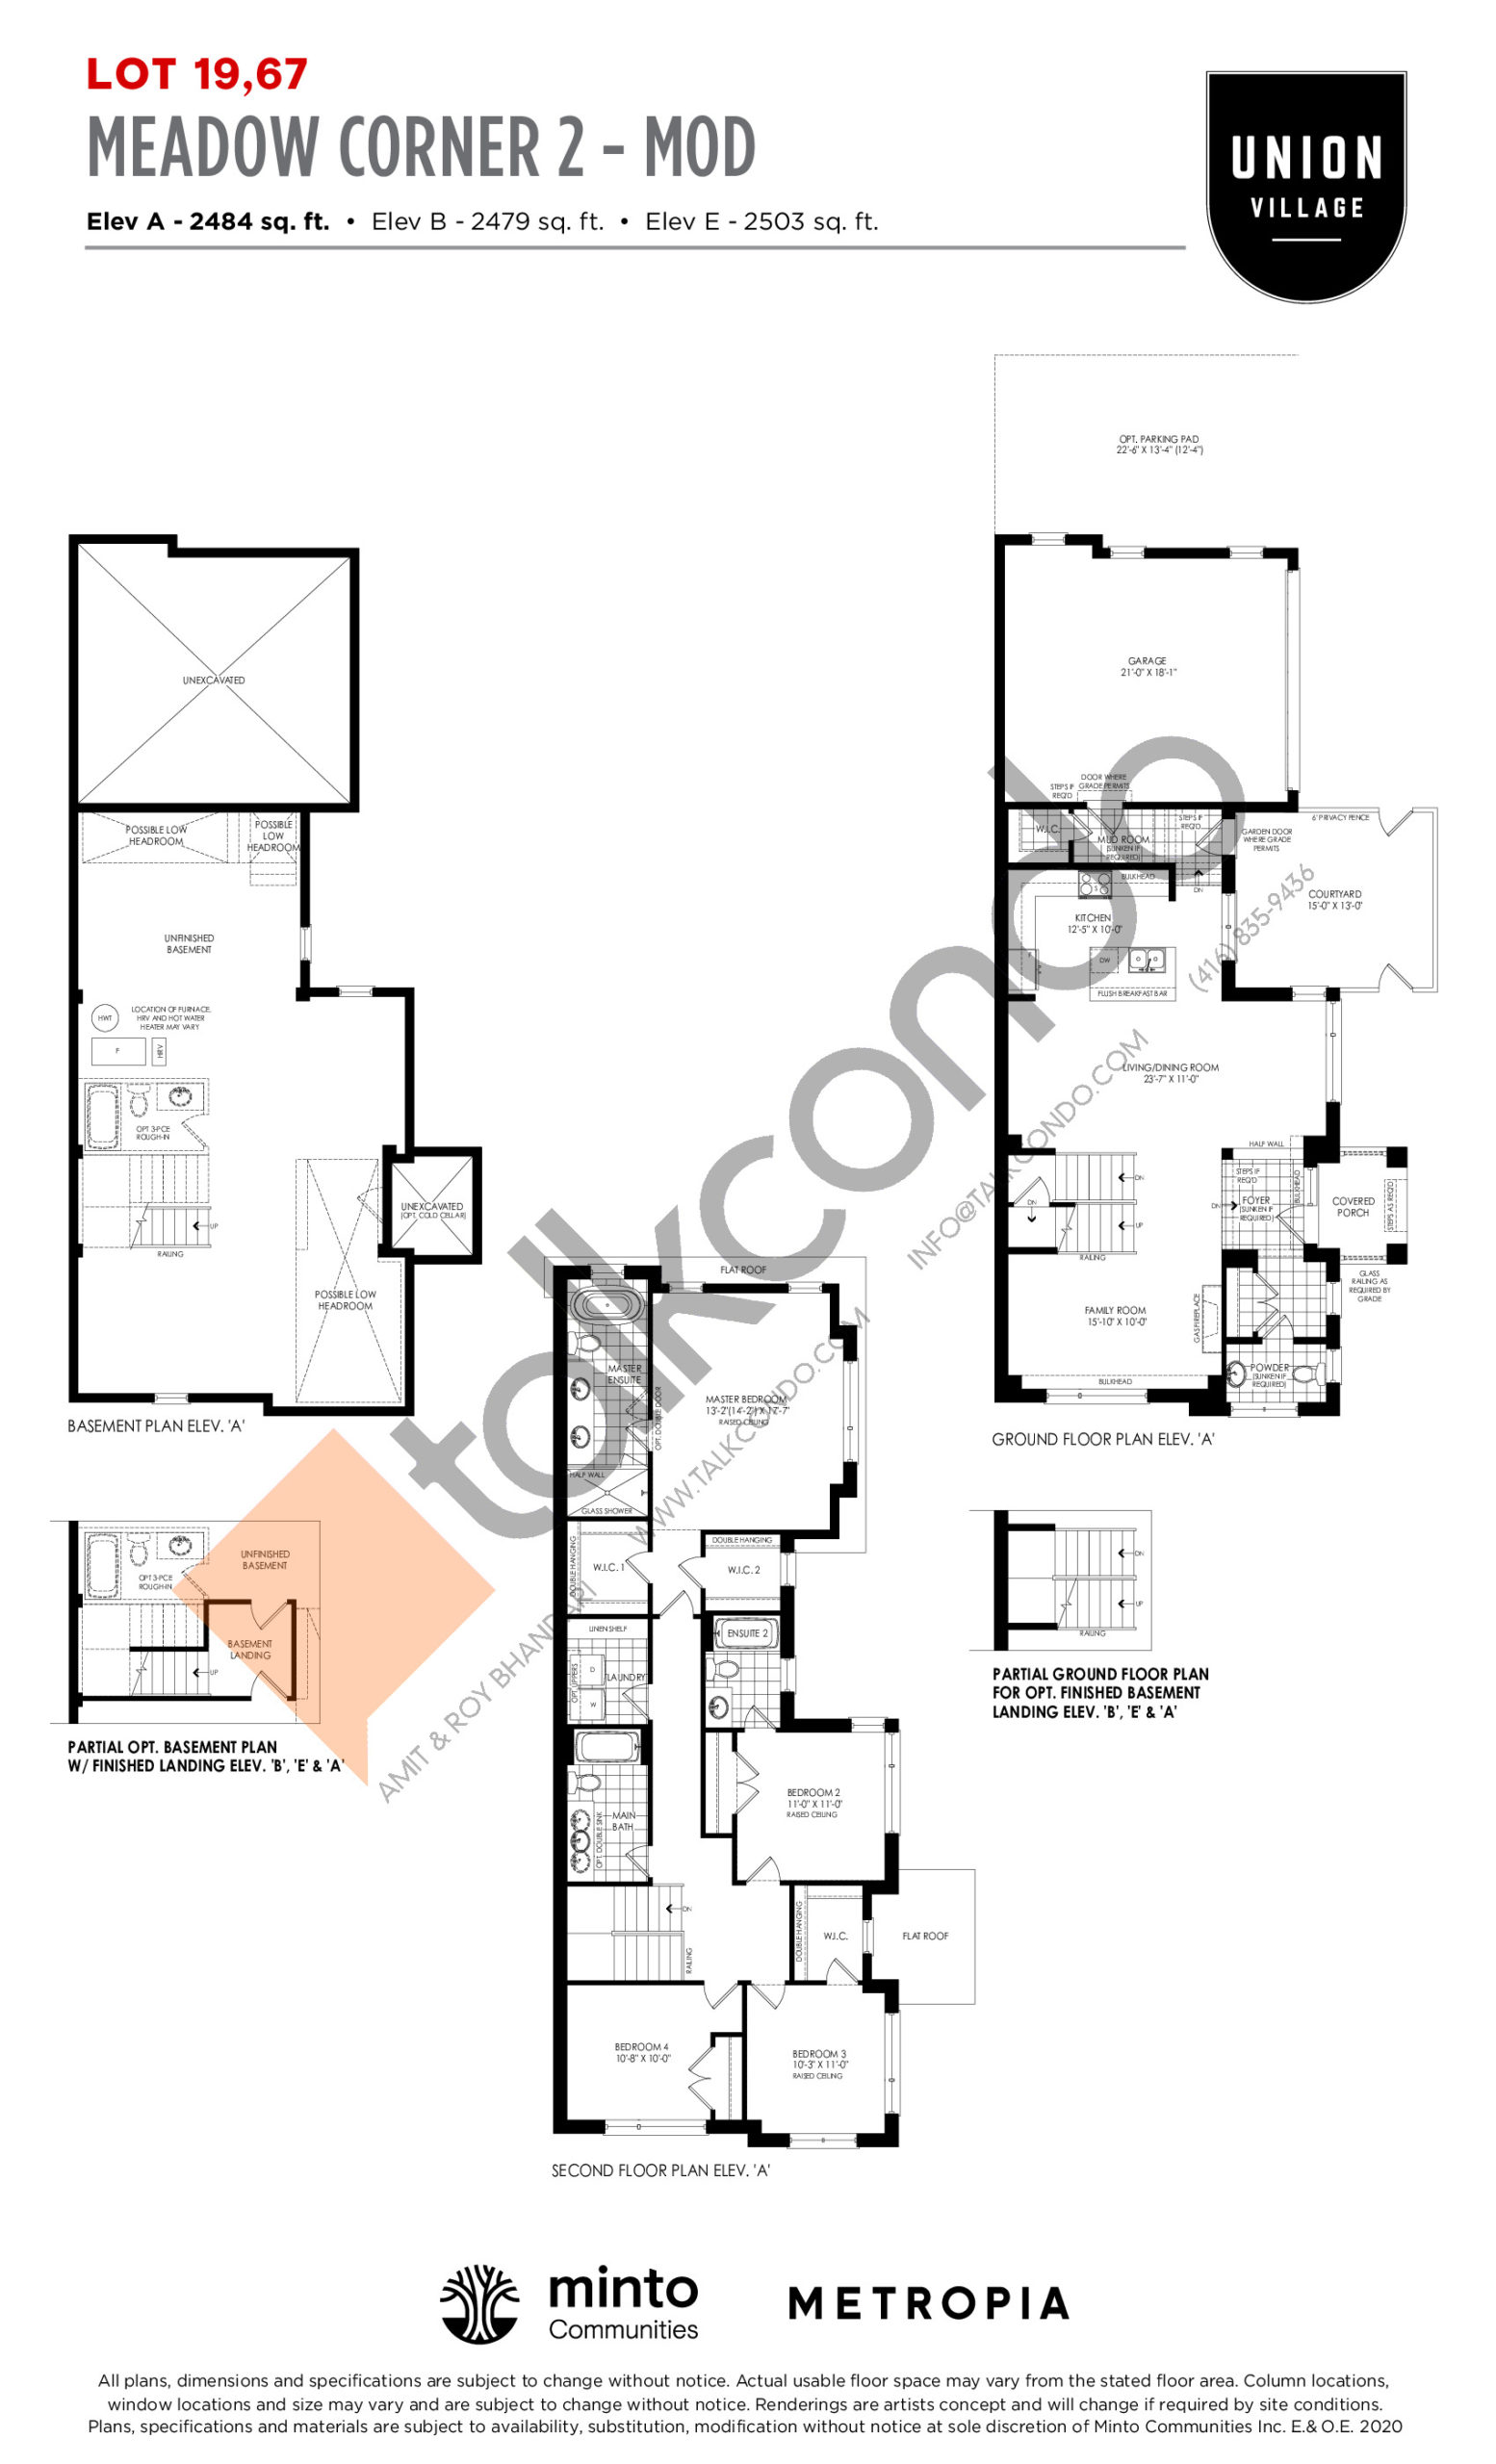 Meadow Corner 2 - MOD Elev A - The Rosewood Collection Floor Plan at Union Village - 2484 sq.ft